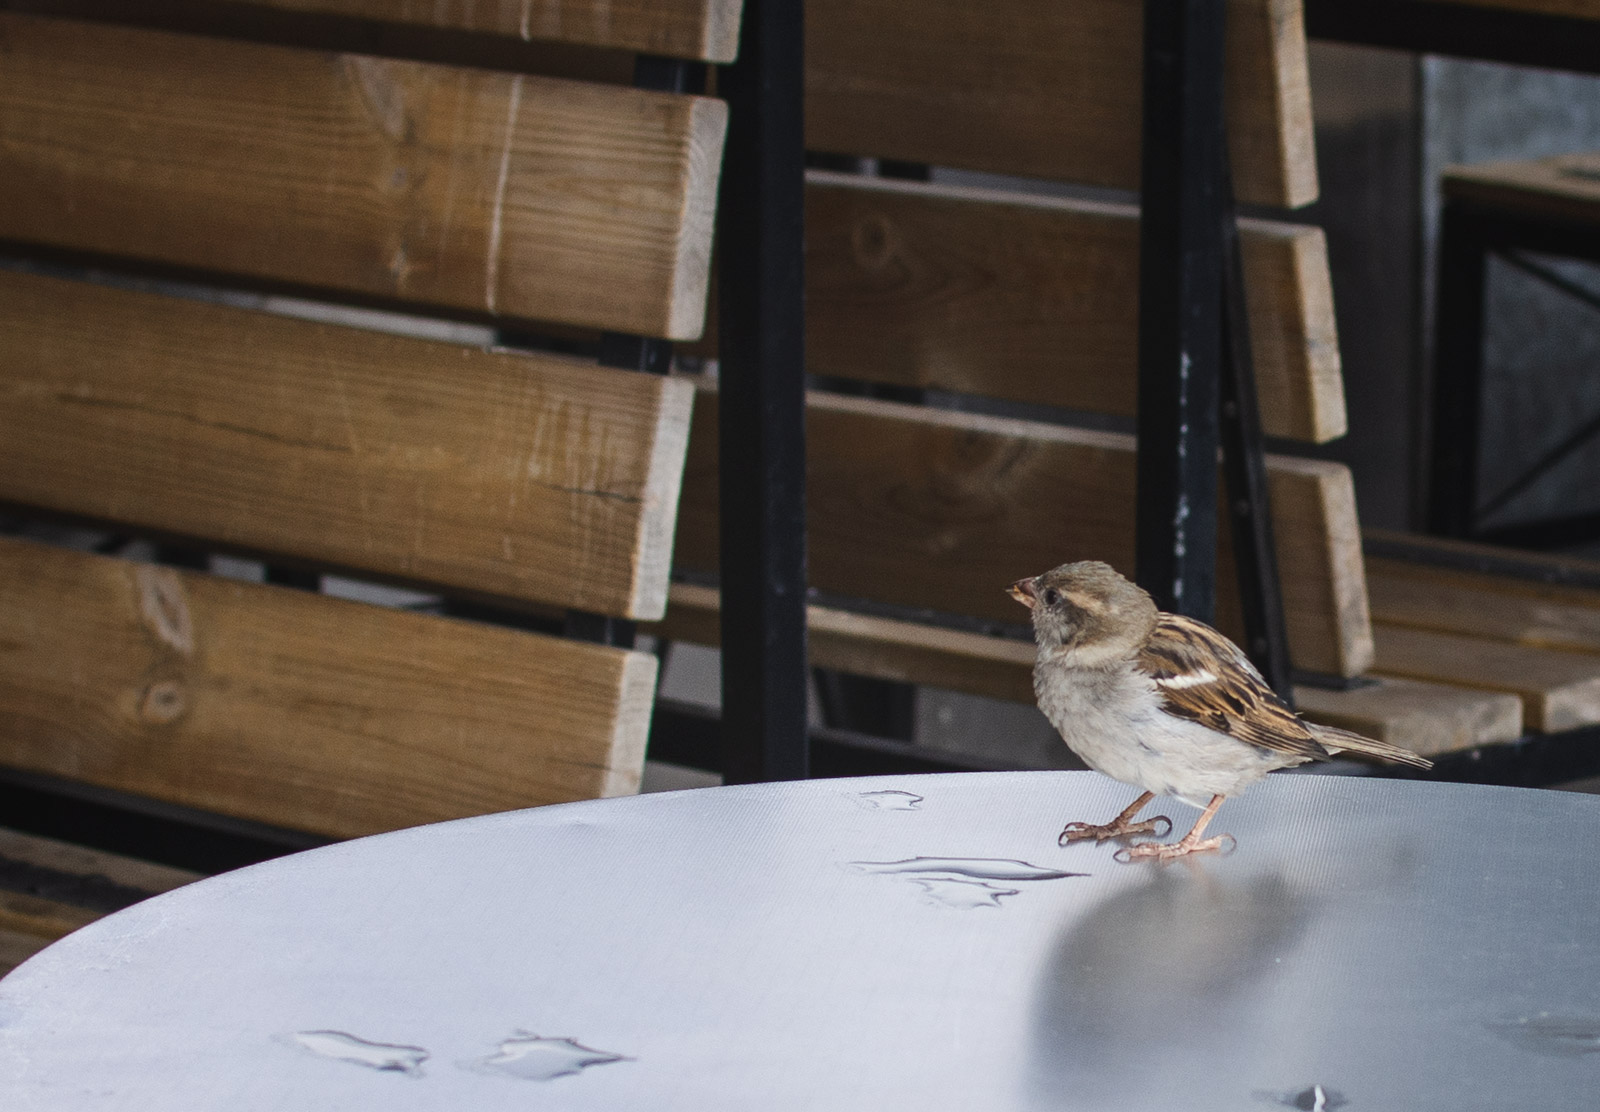 Sparrow on table